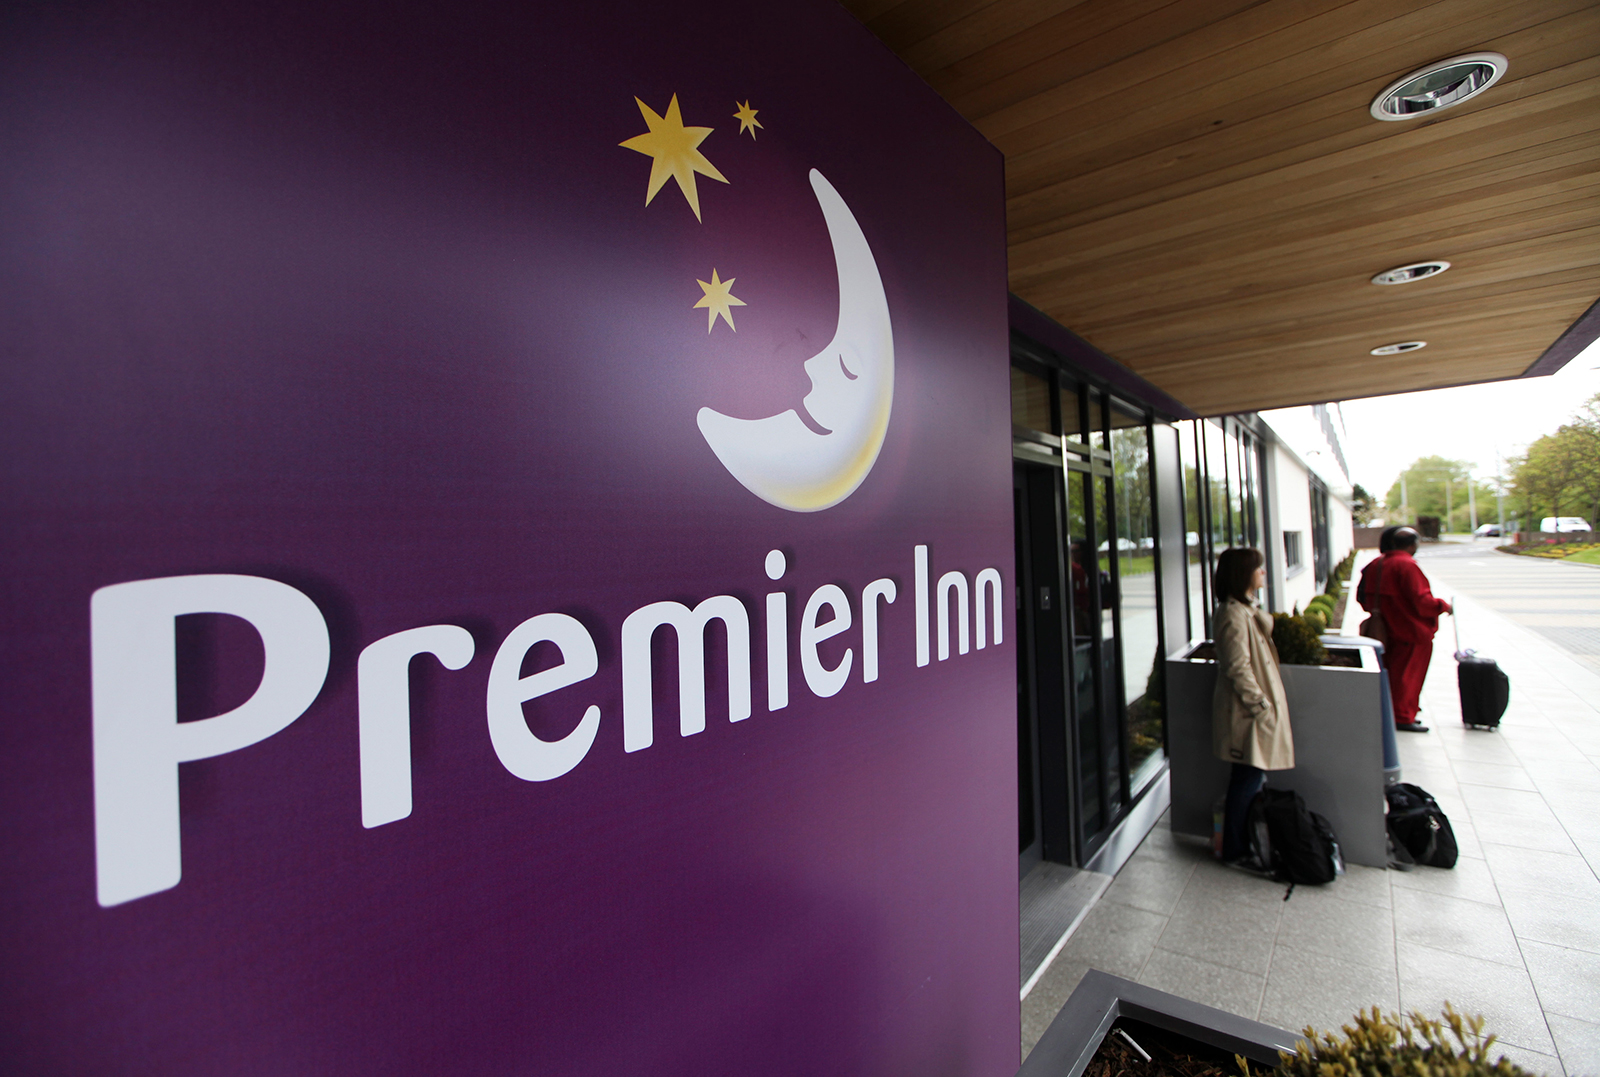 Premier Inn owner warns 6,000 jobs could go. UK pubs and restaurants brace for worse to come